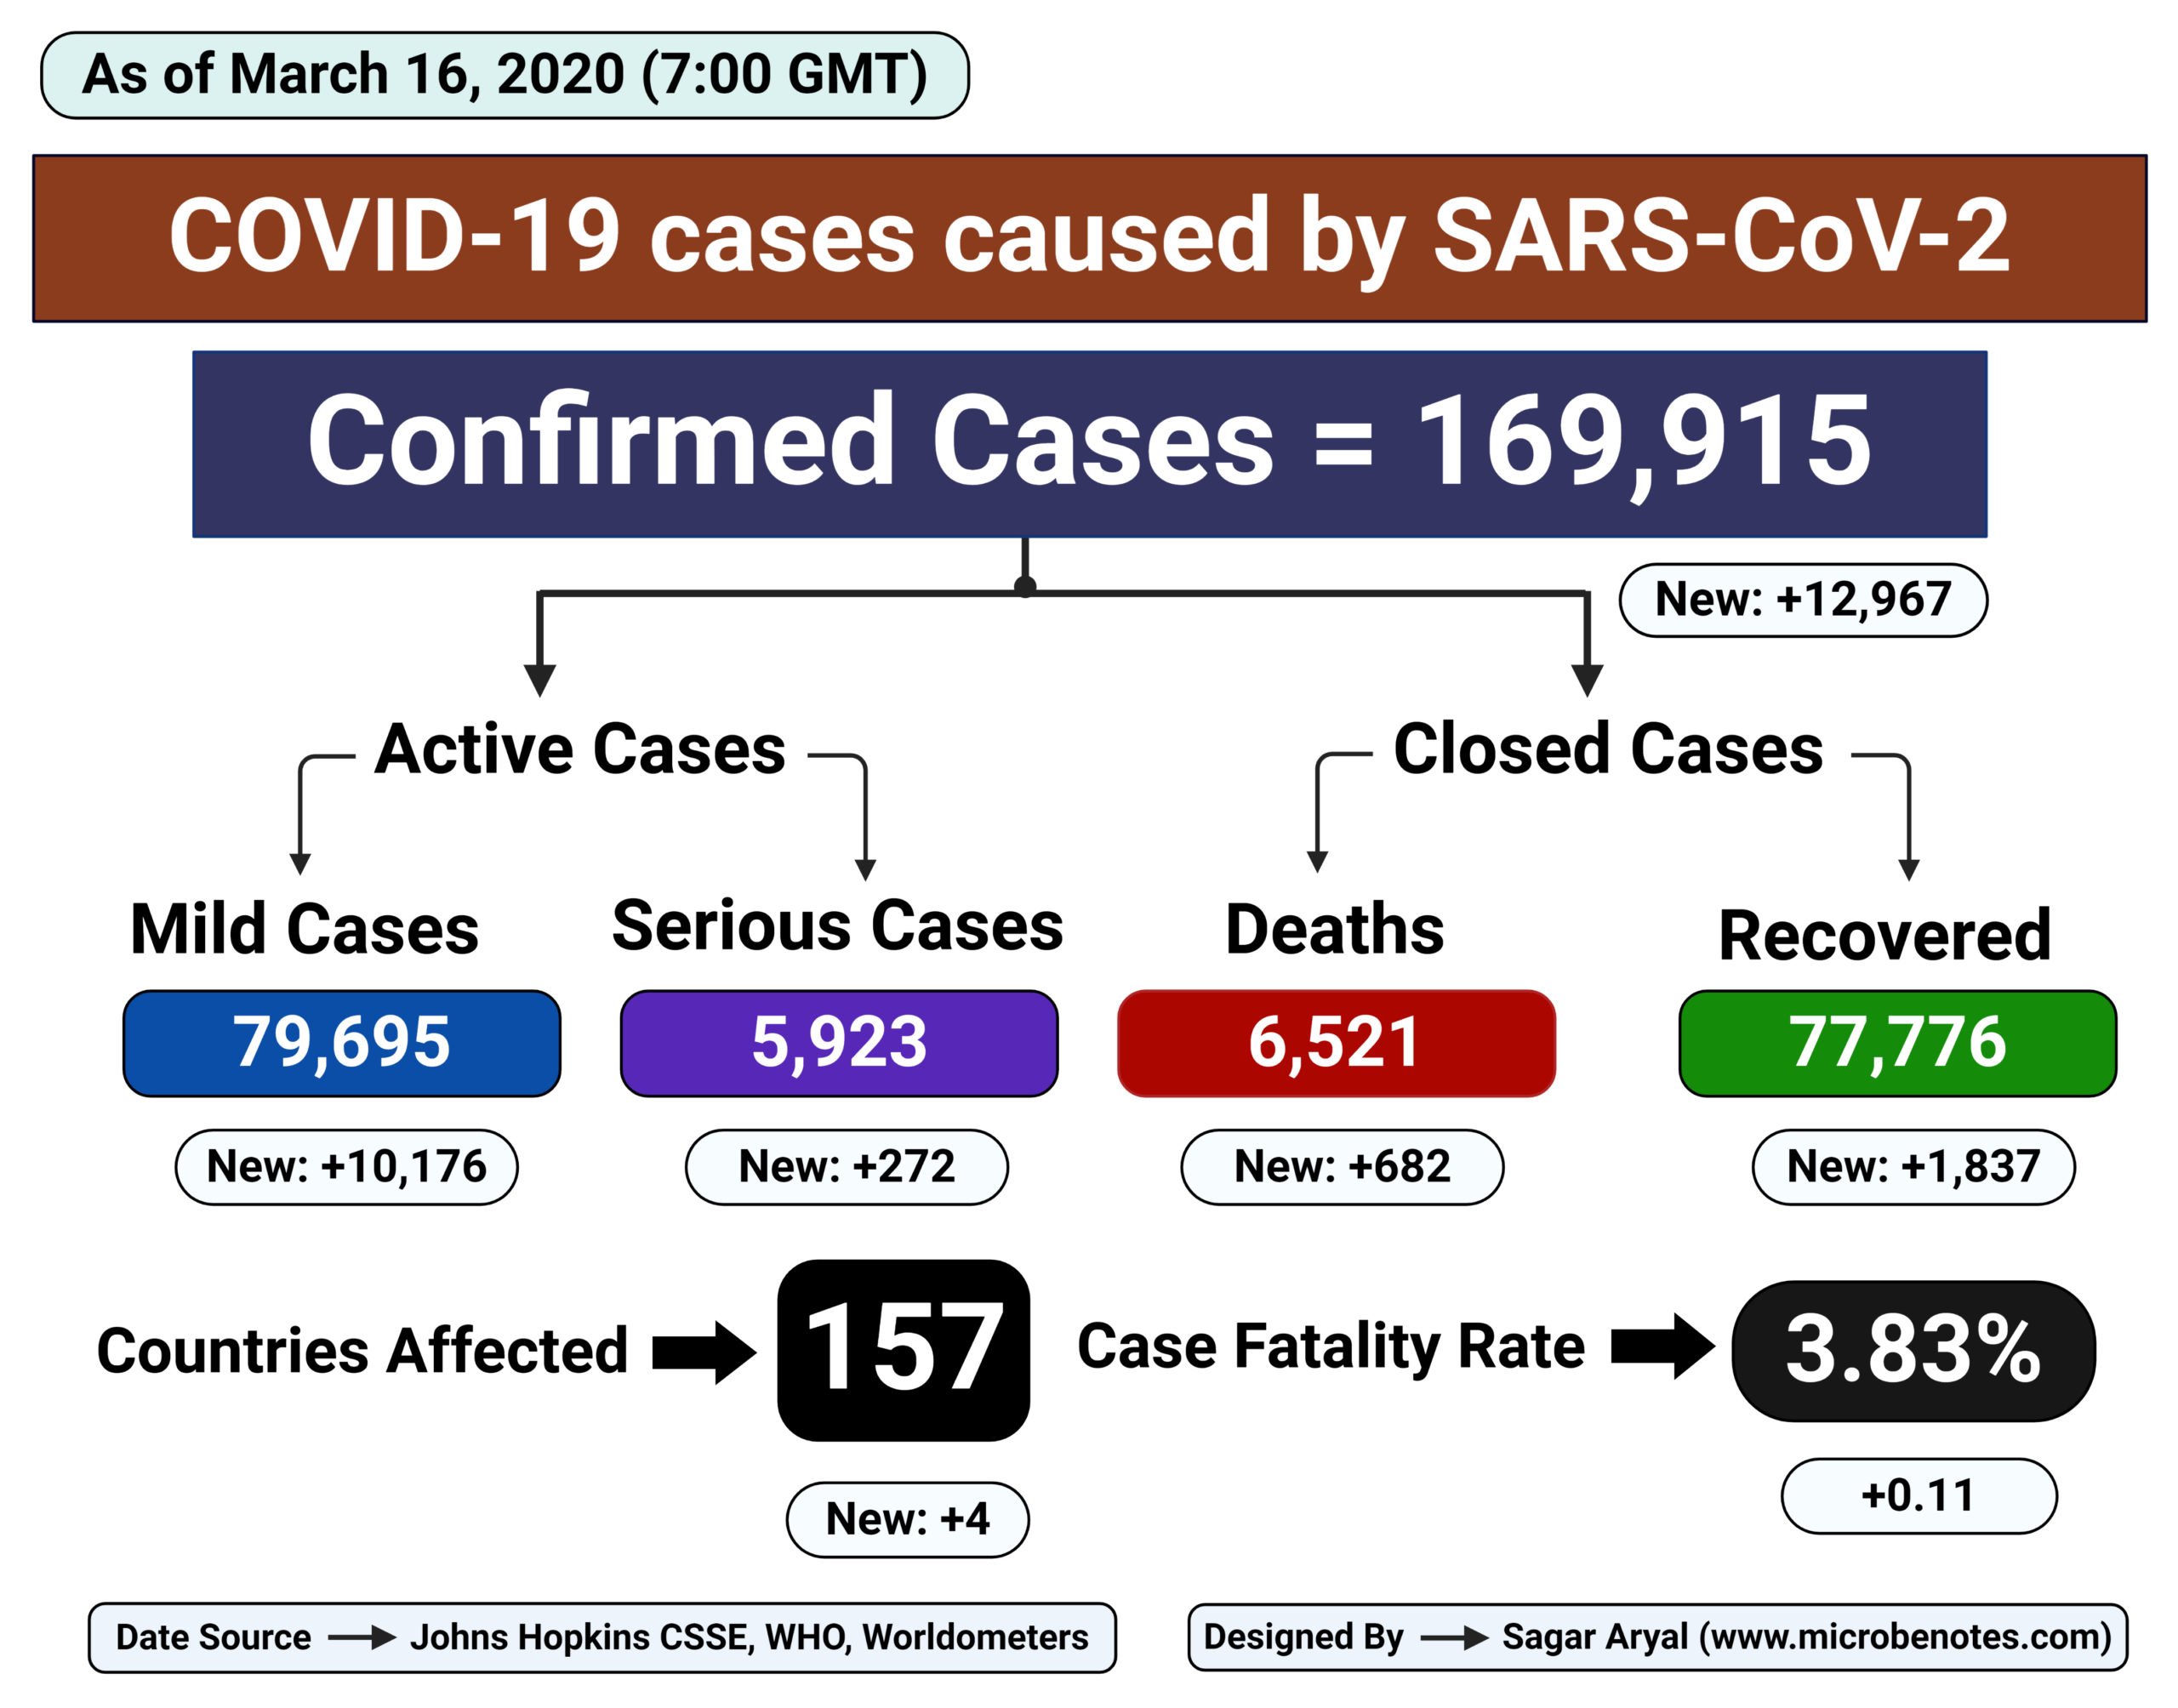 Epidemiology of COVID-19 caused by SARS-CoV-2 as of March 16, 2020